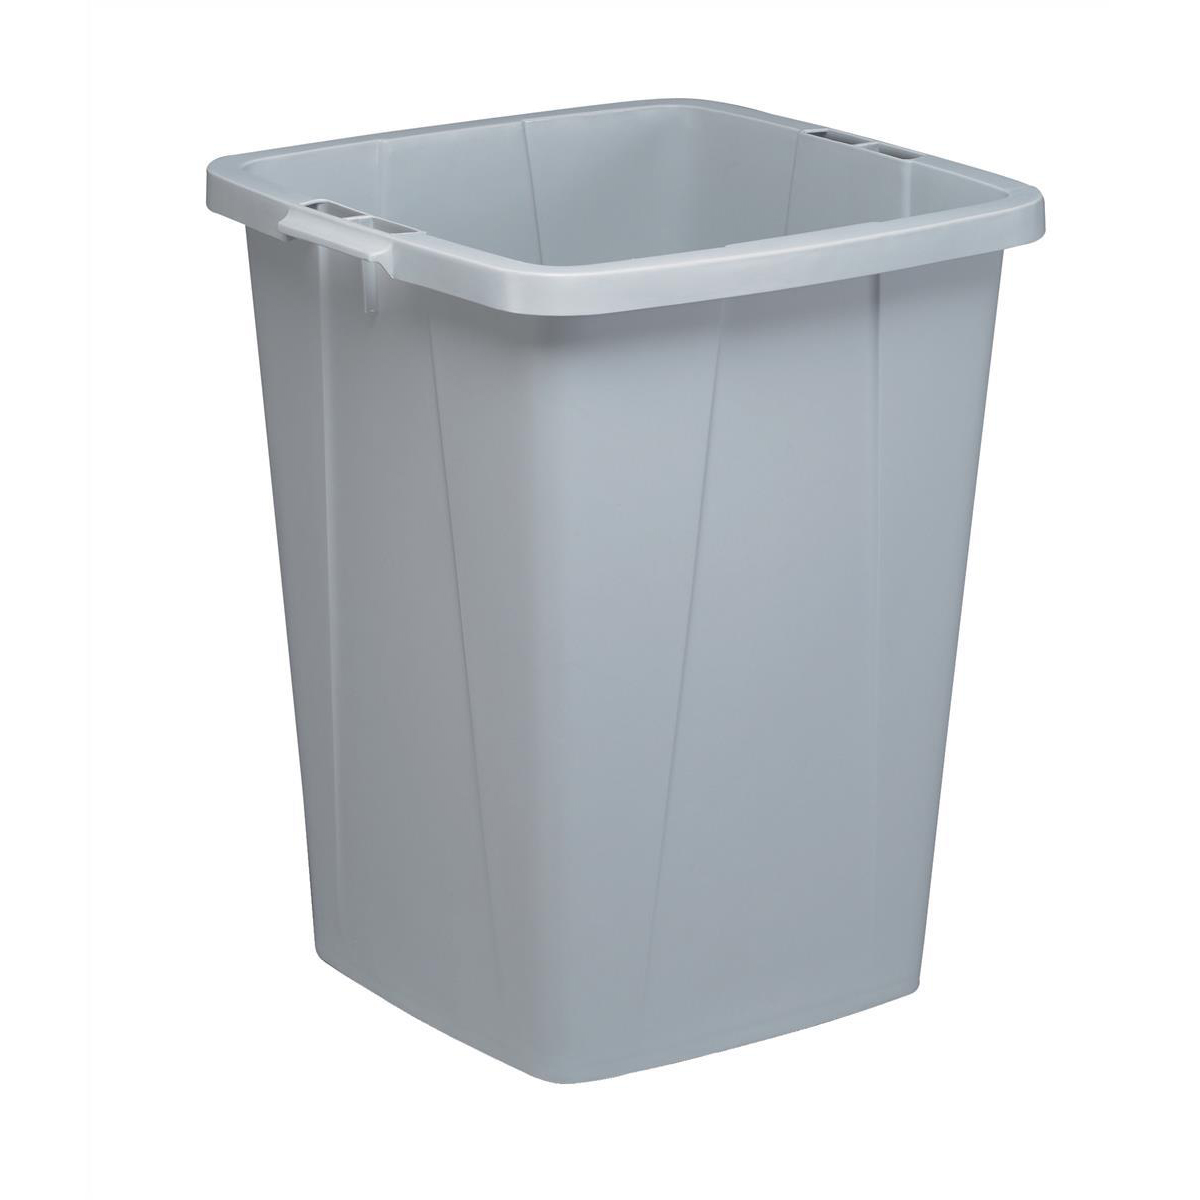 Rubbish Bins Durable Durabin Slim Bin for Recycling Waste 90 Litre Capacity 515x485x605mm Grey Ref 1800474050